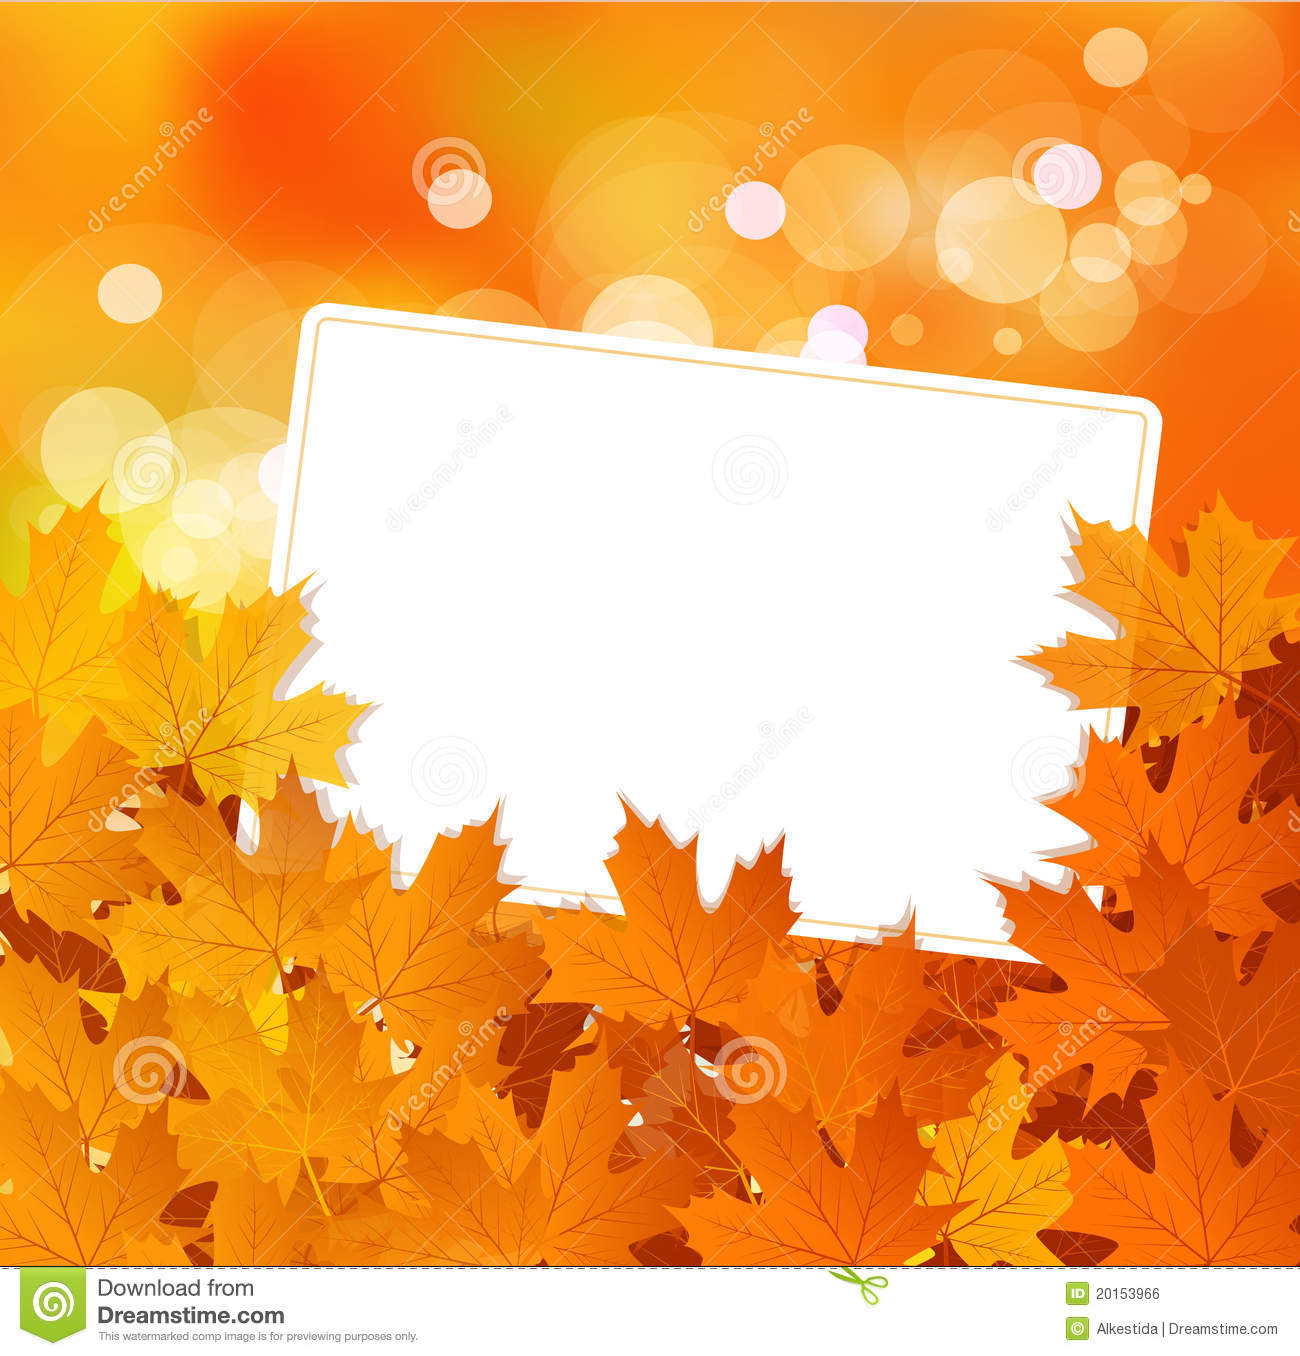 Vector autumn background with greeting card stock vector vector autumn background with greeting card m4hsunfo Images